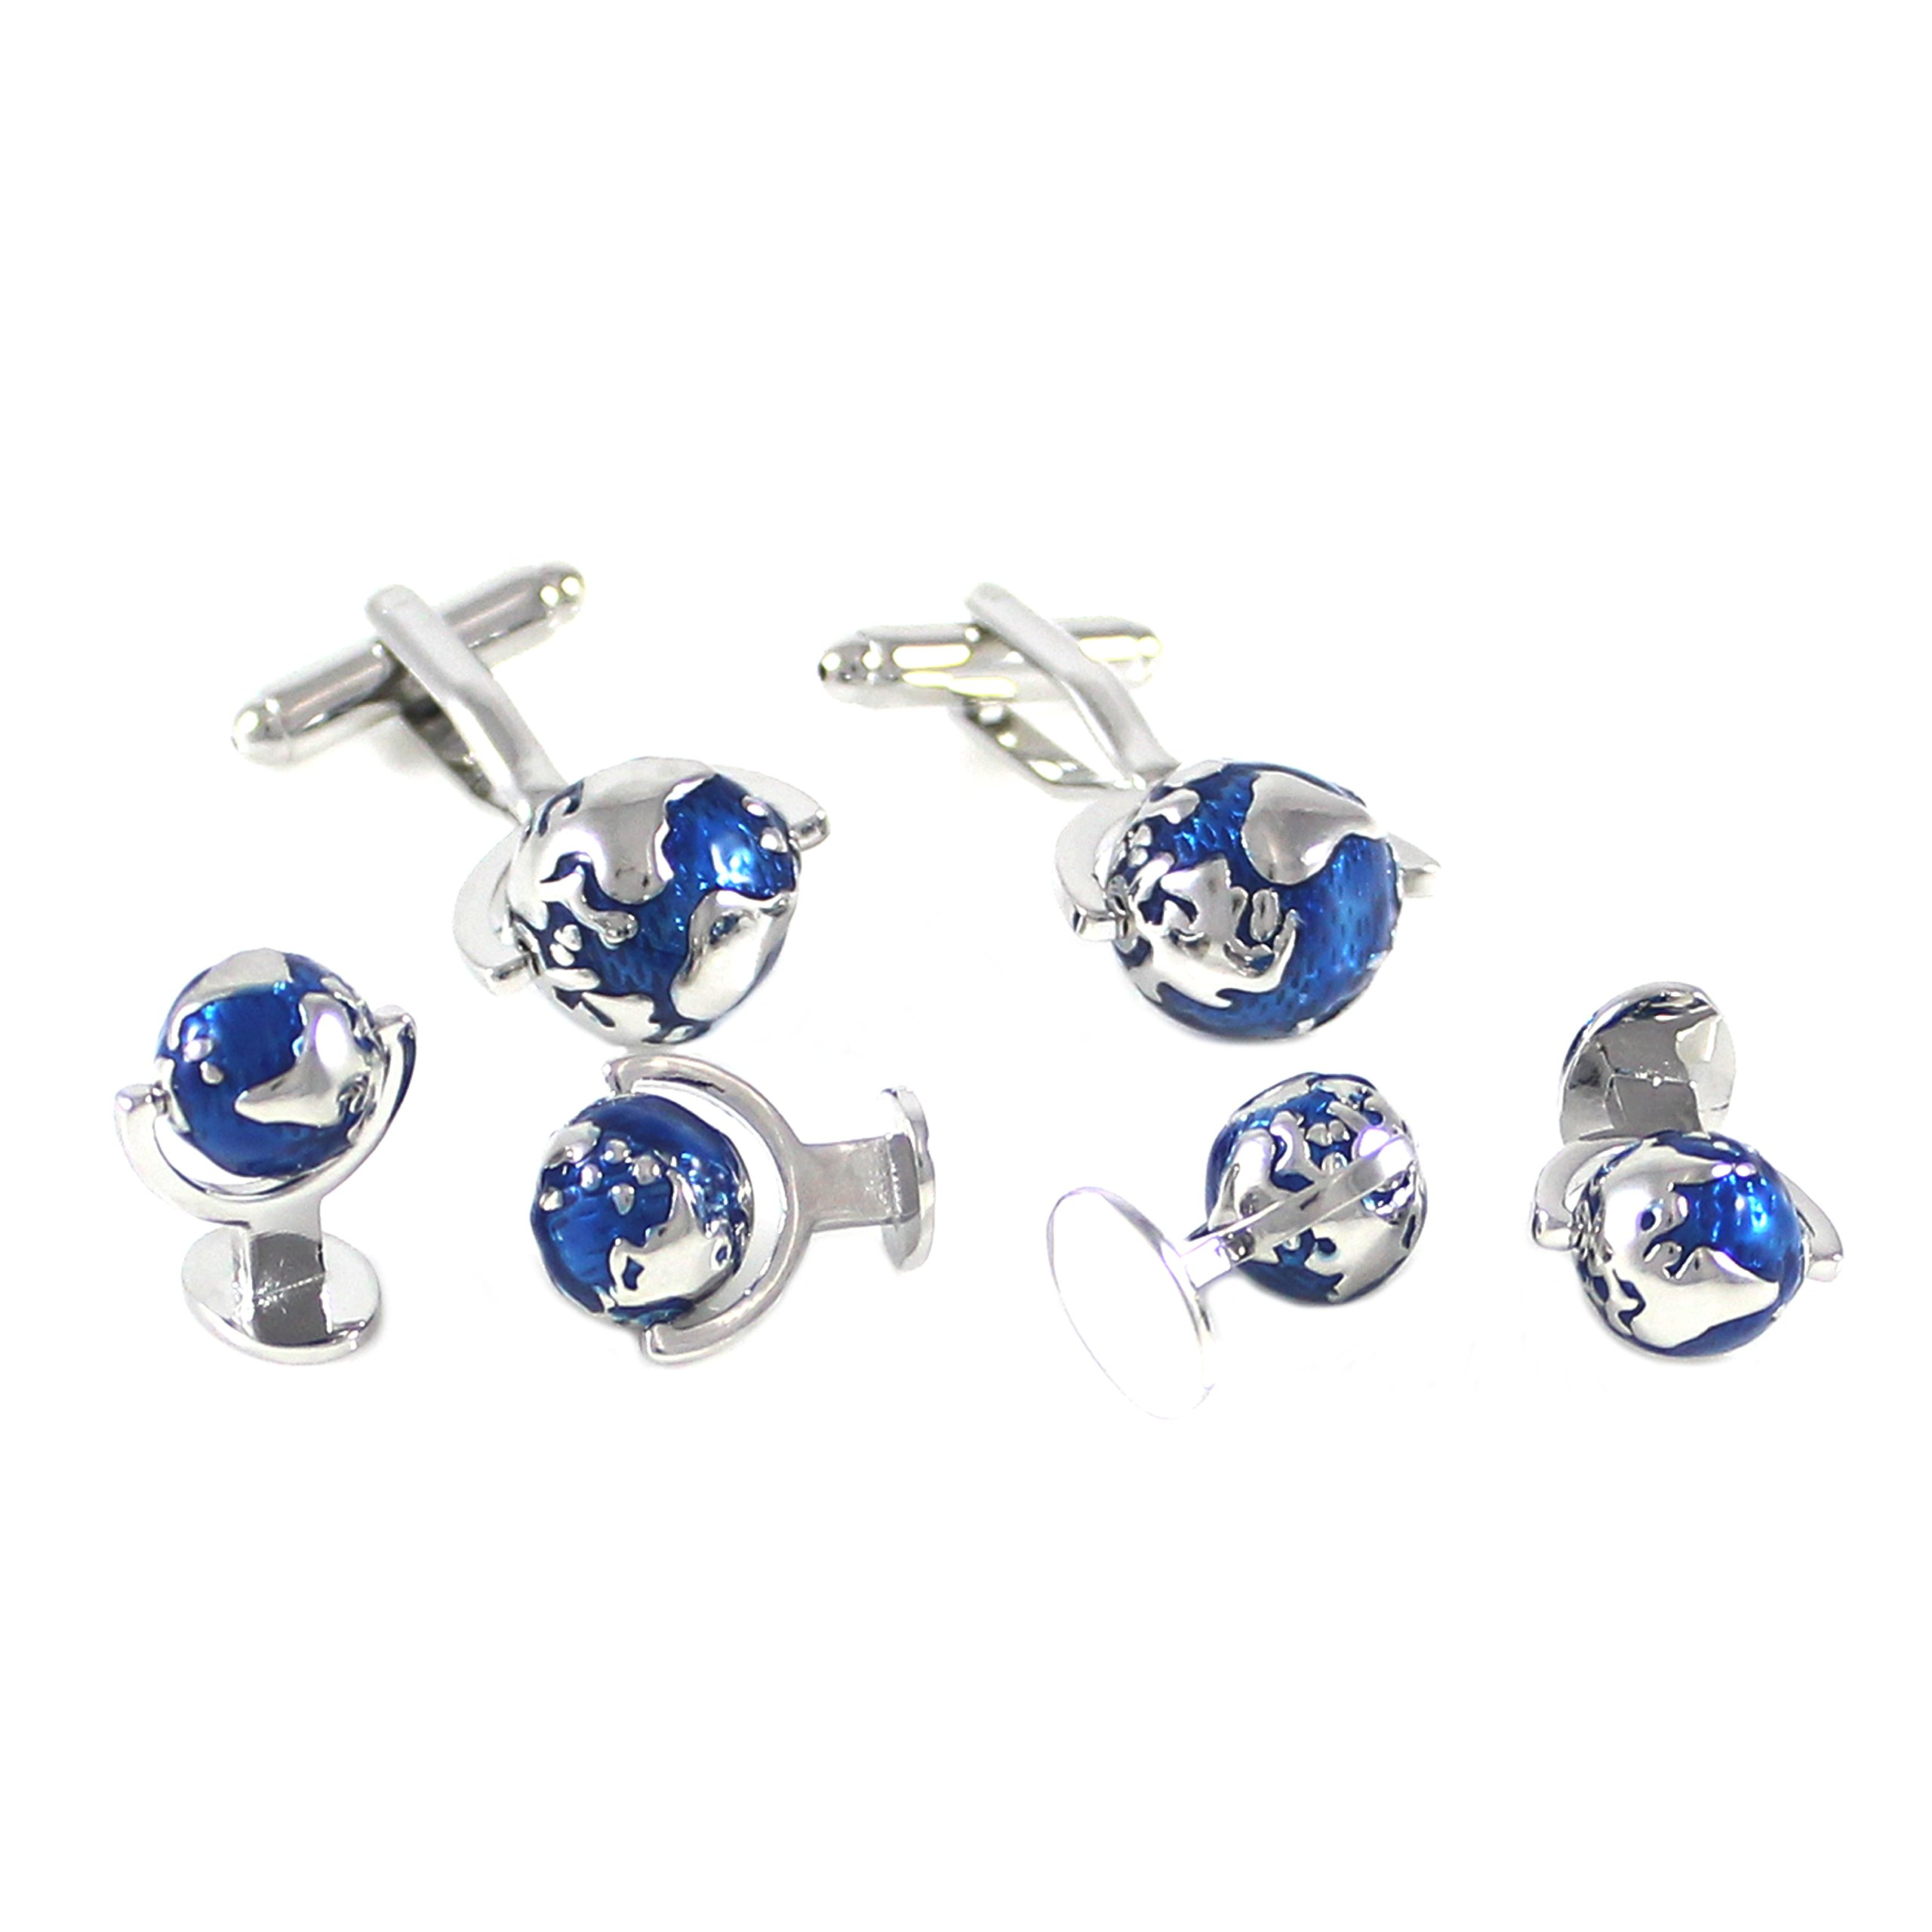 MENDEPOT Classic Rhodium Plated Blue And Silver Globe Cuff Link And Shirt Studs Formal Wear Set With Box Earth Planet Suit Set by MENDEPOT (Image #1)